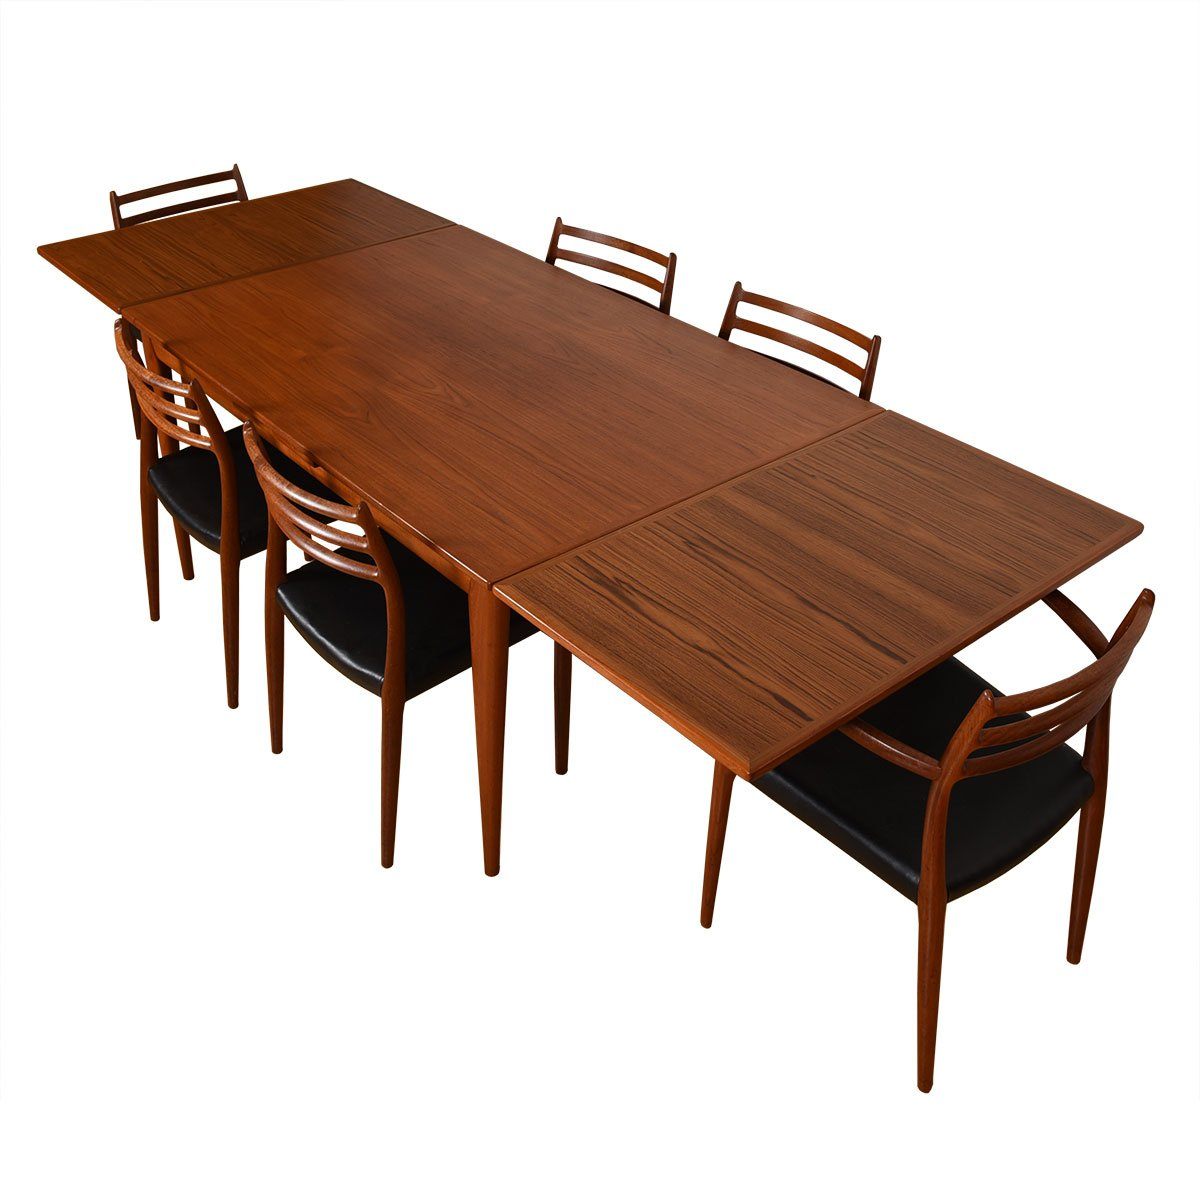 Mid-Sized Danish Teak Dining Table by Niels Møller